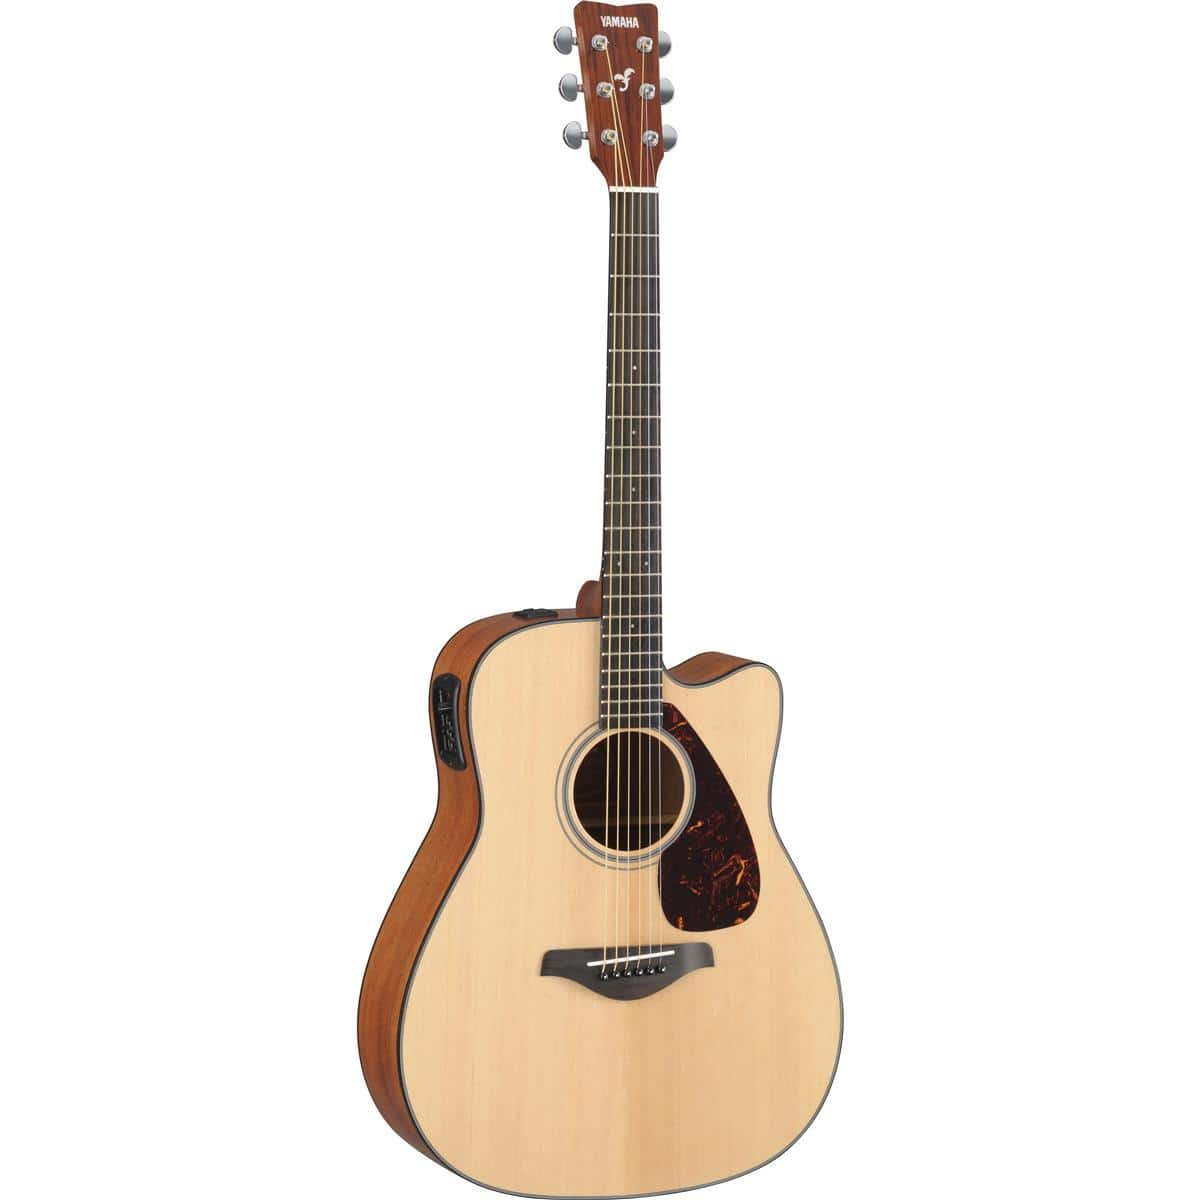 Yamaha FGX700SC 6 String Solid Top Cutaway Acoustic-Electric Guitar $199 + free shipping